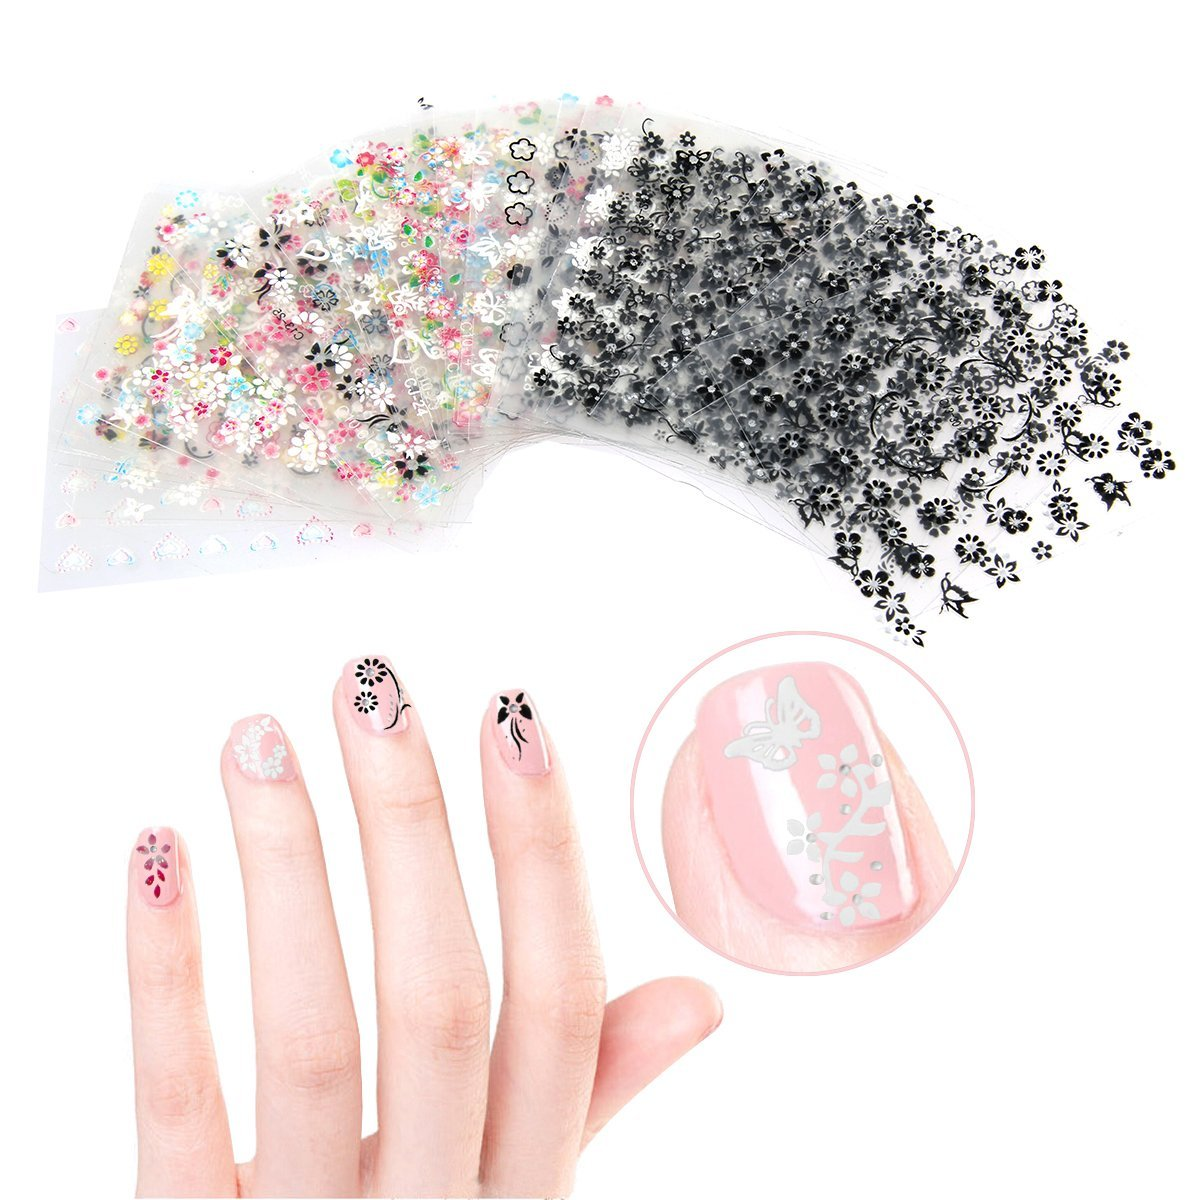 Cheap Gothic Nail Design Find Gothic Nail Design Deals On Line At